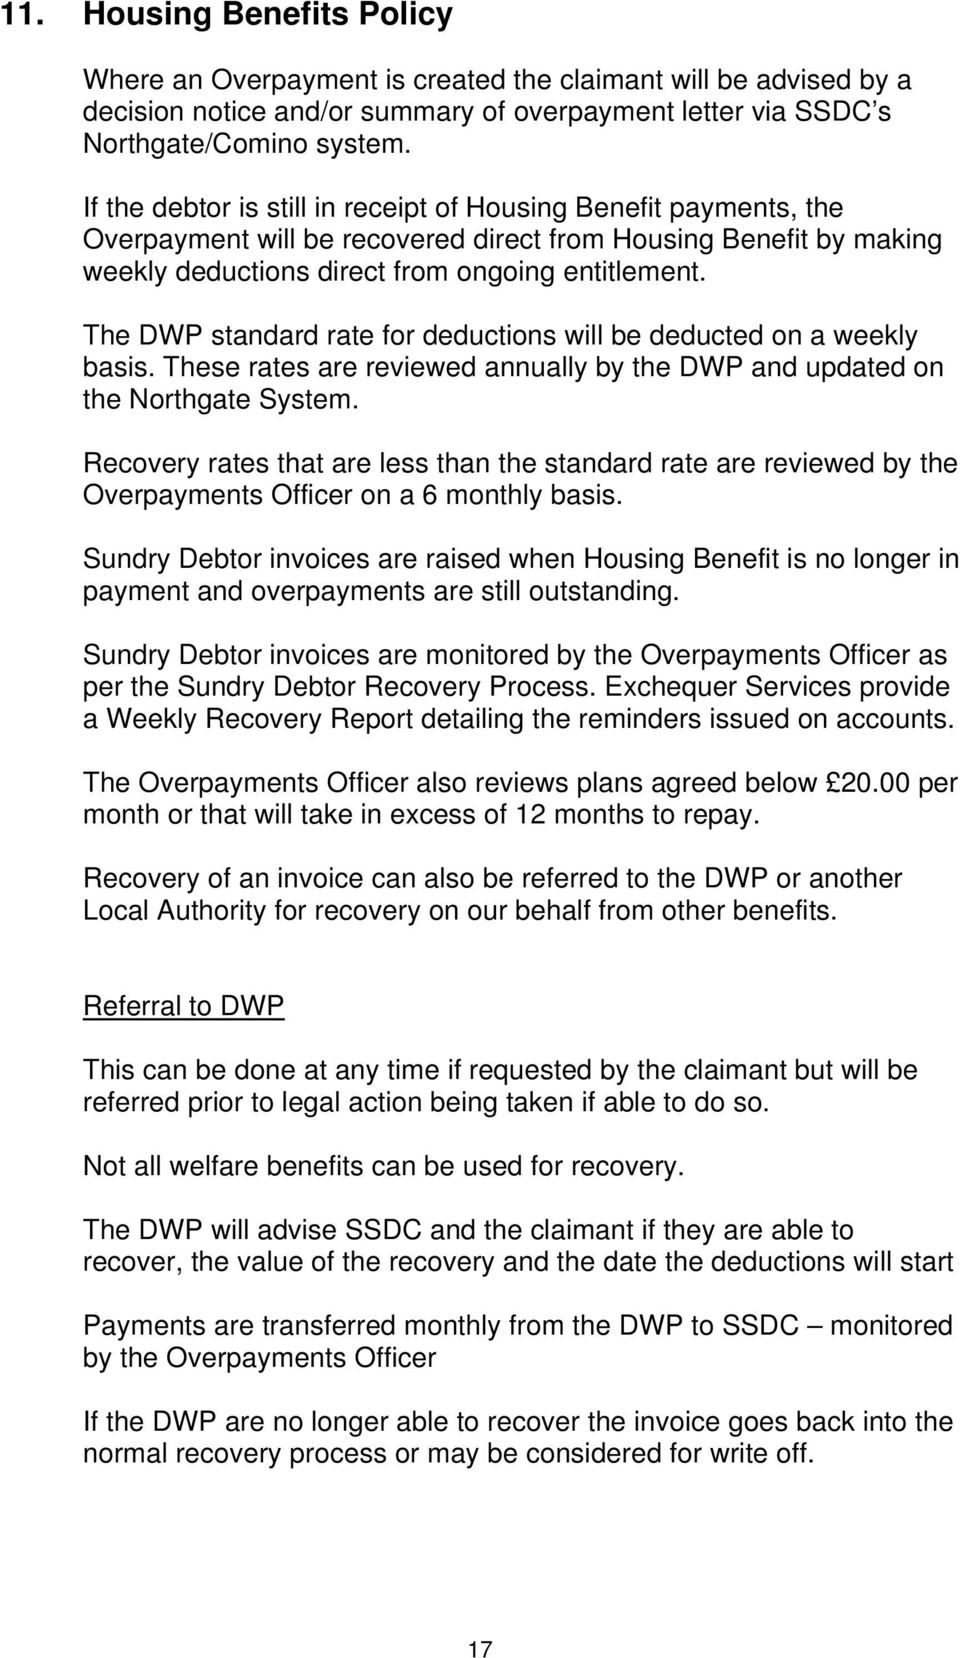 The DWP standard rate for deductions will be deducted on a weekly basis. These rates are reviewed annually by the DWP and updated on the Northgate System.